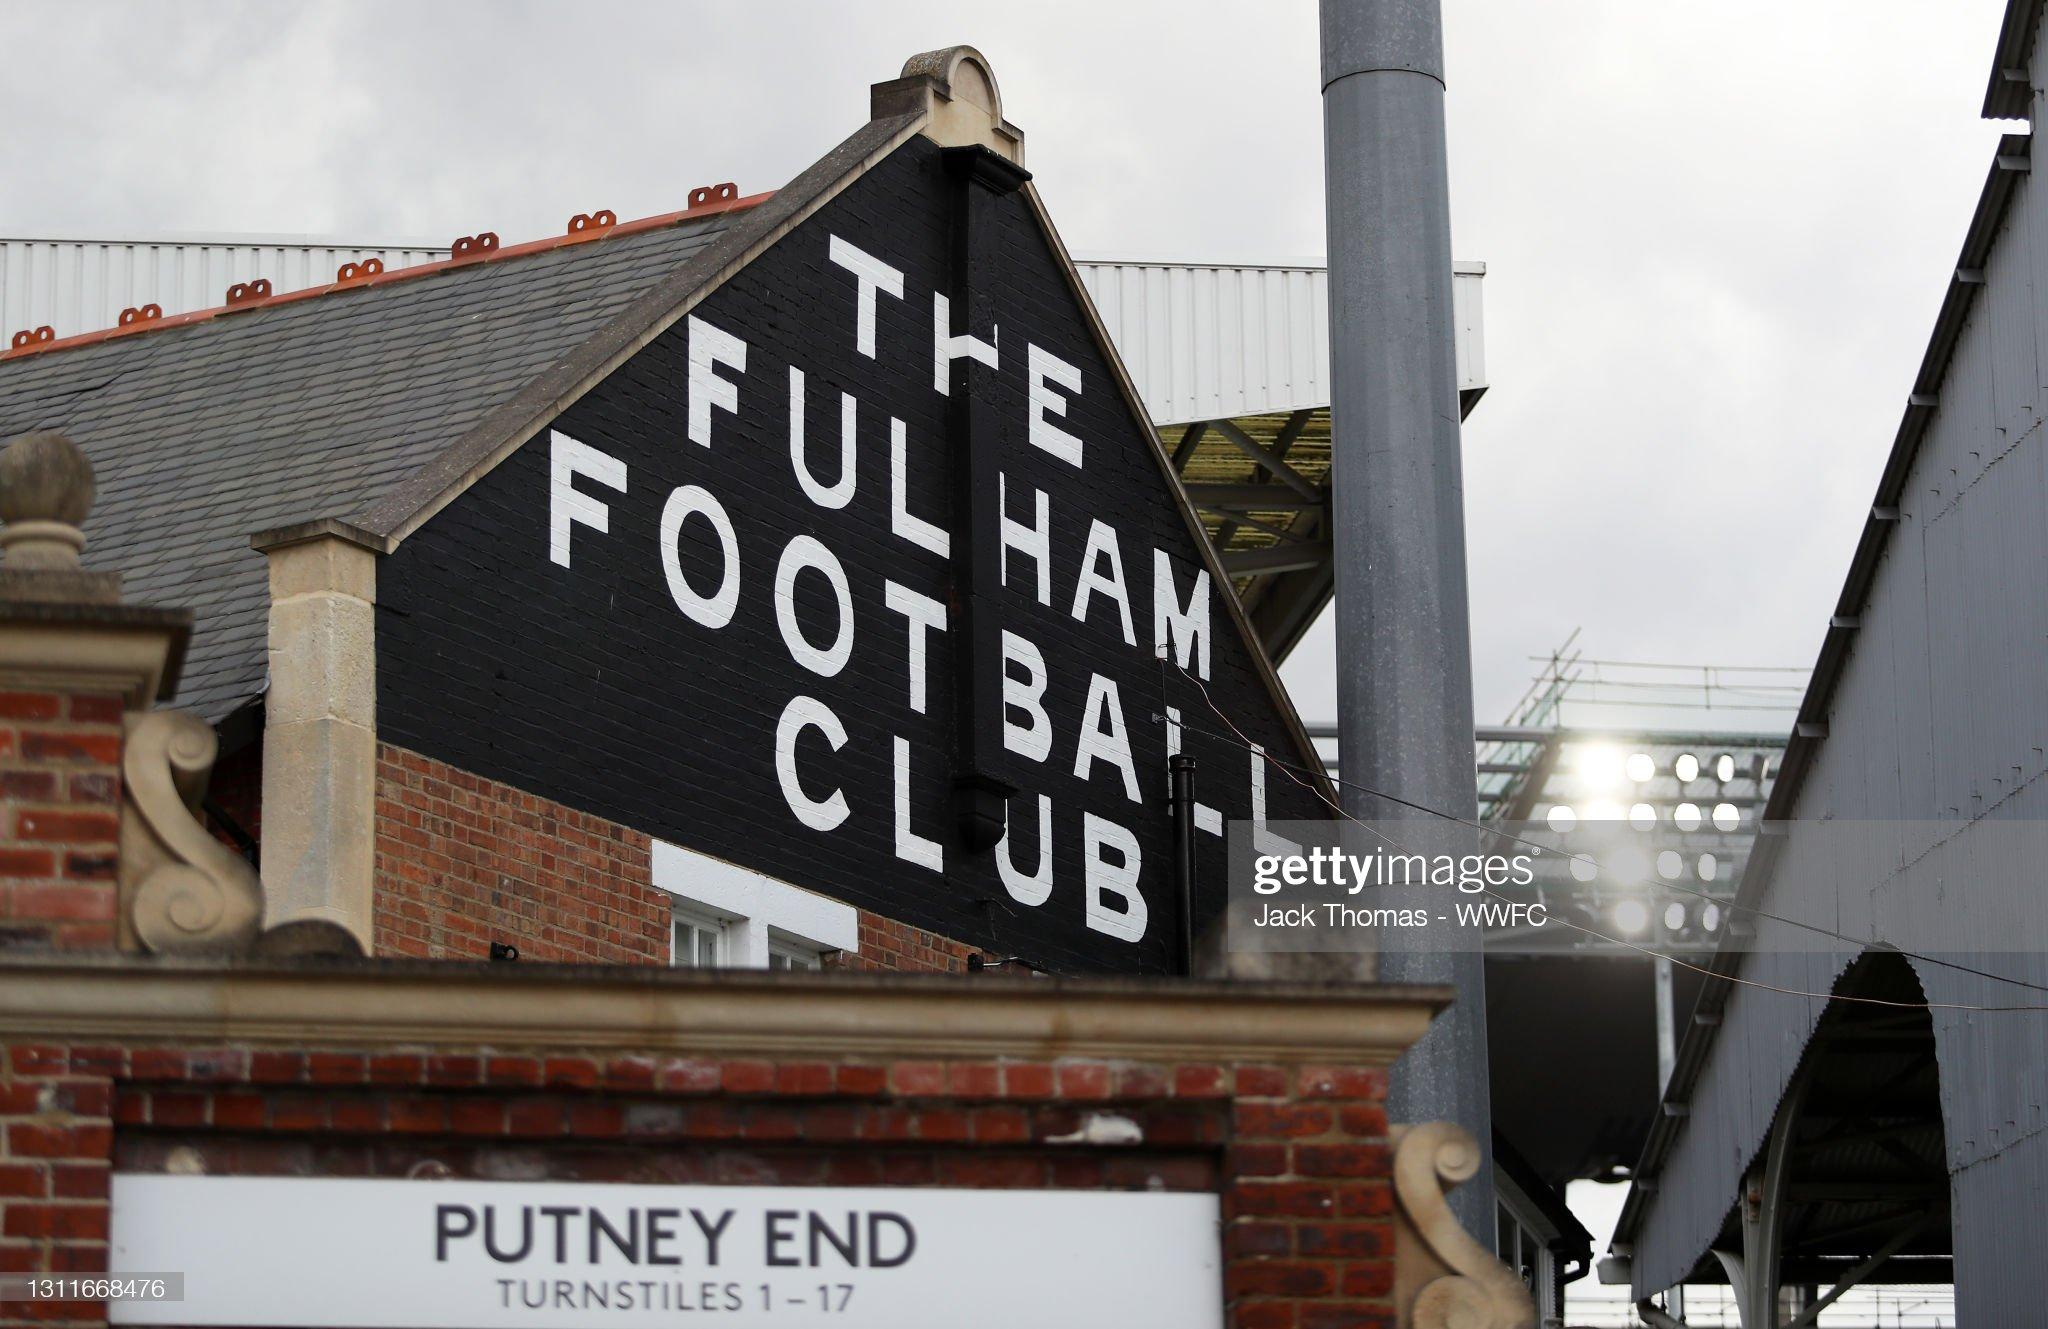 Fulham vs Burnley Preview, prediction and odds